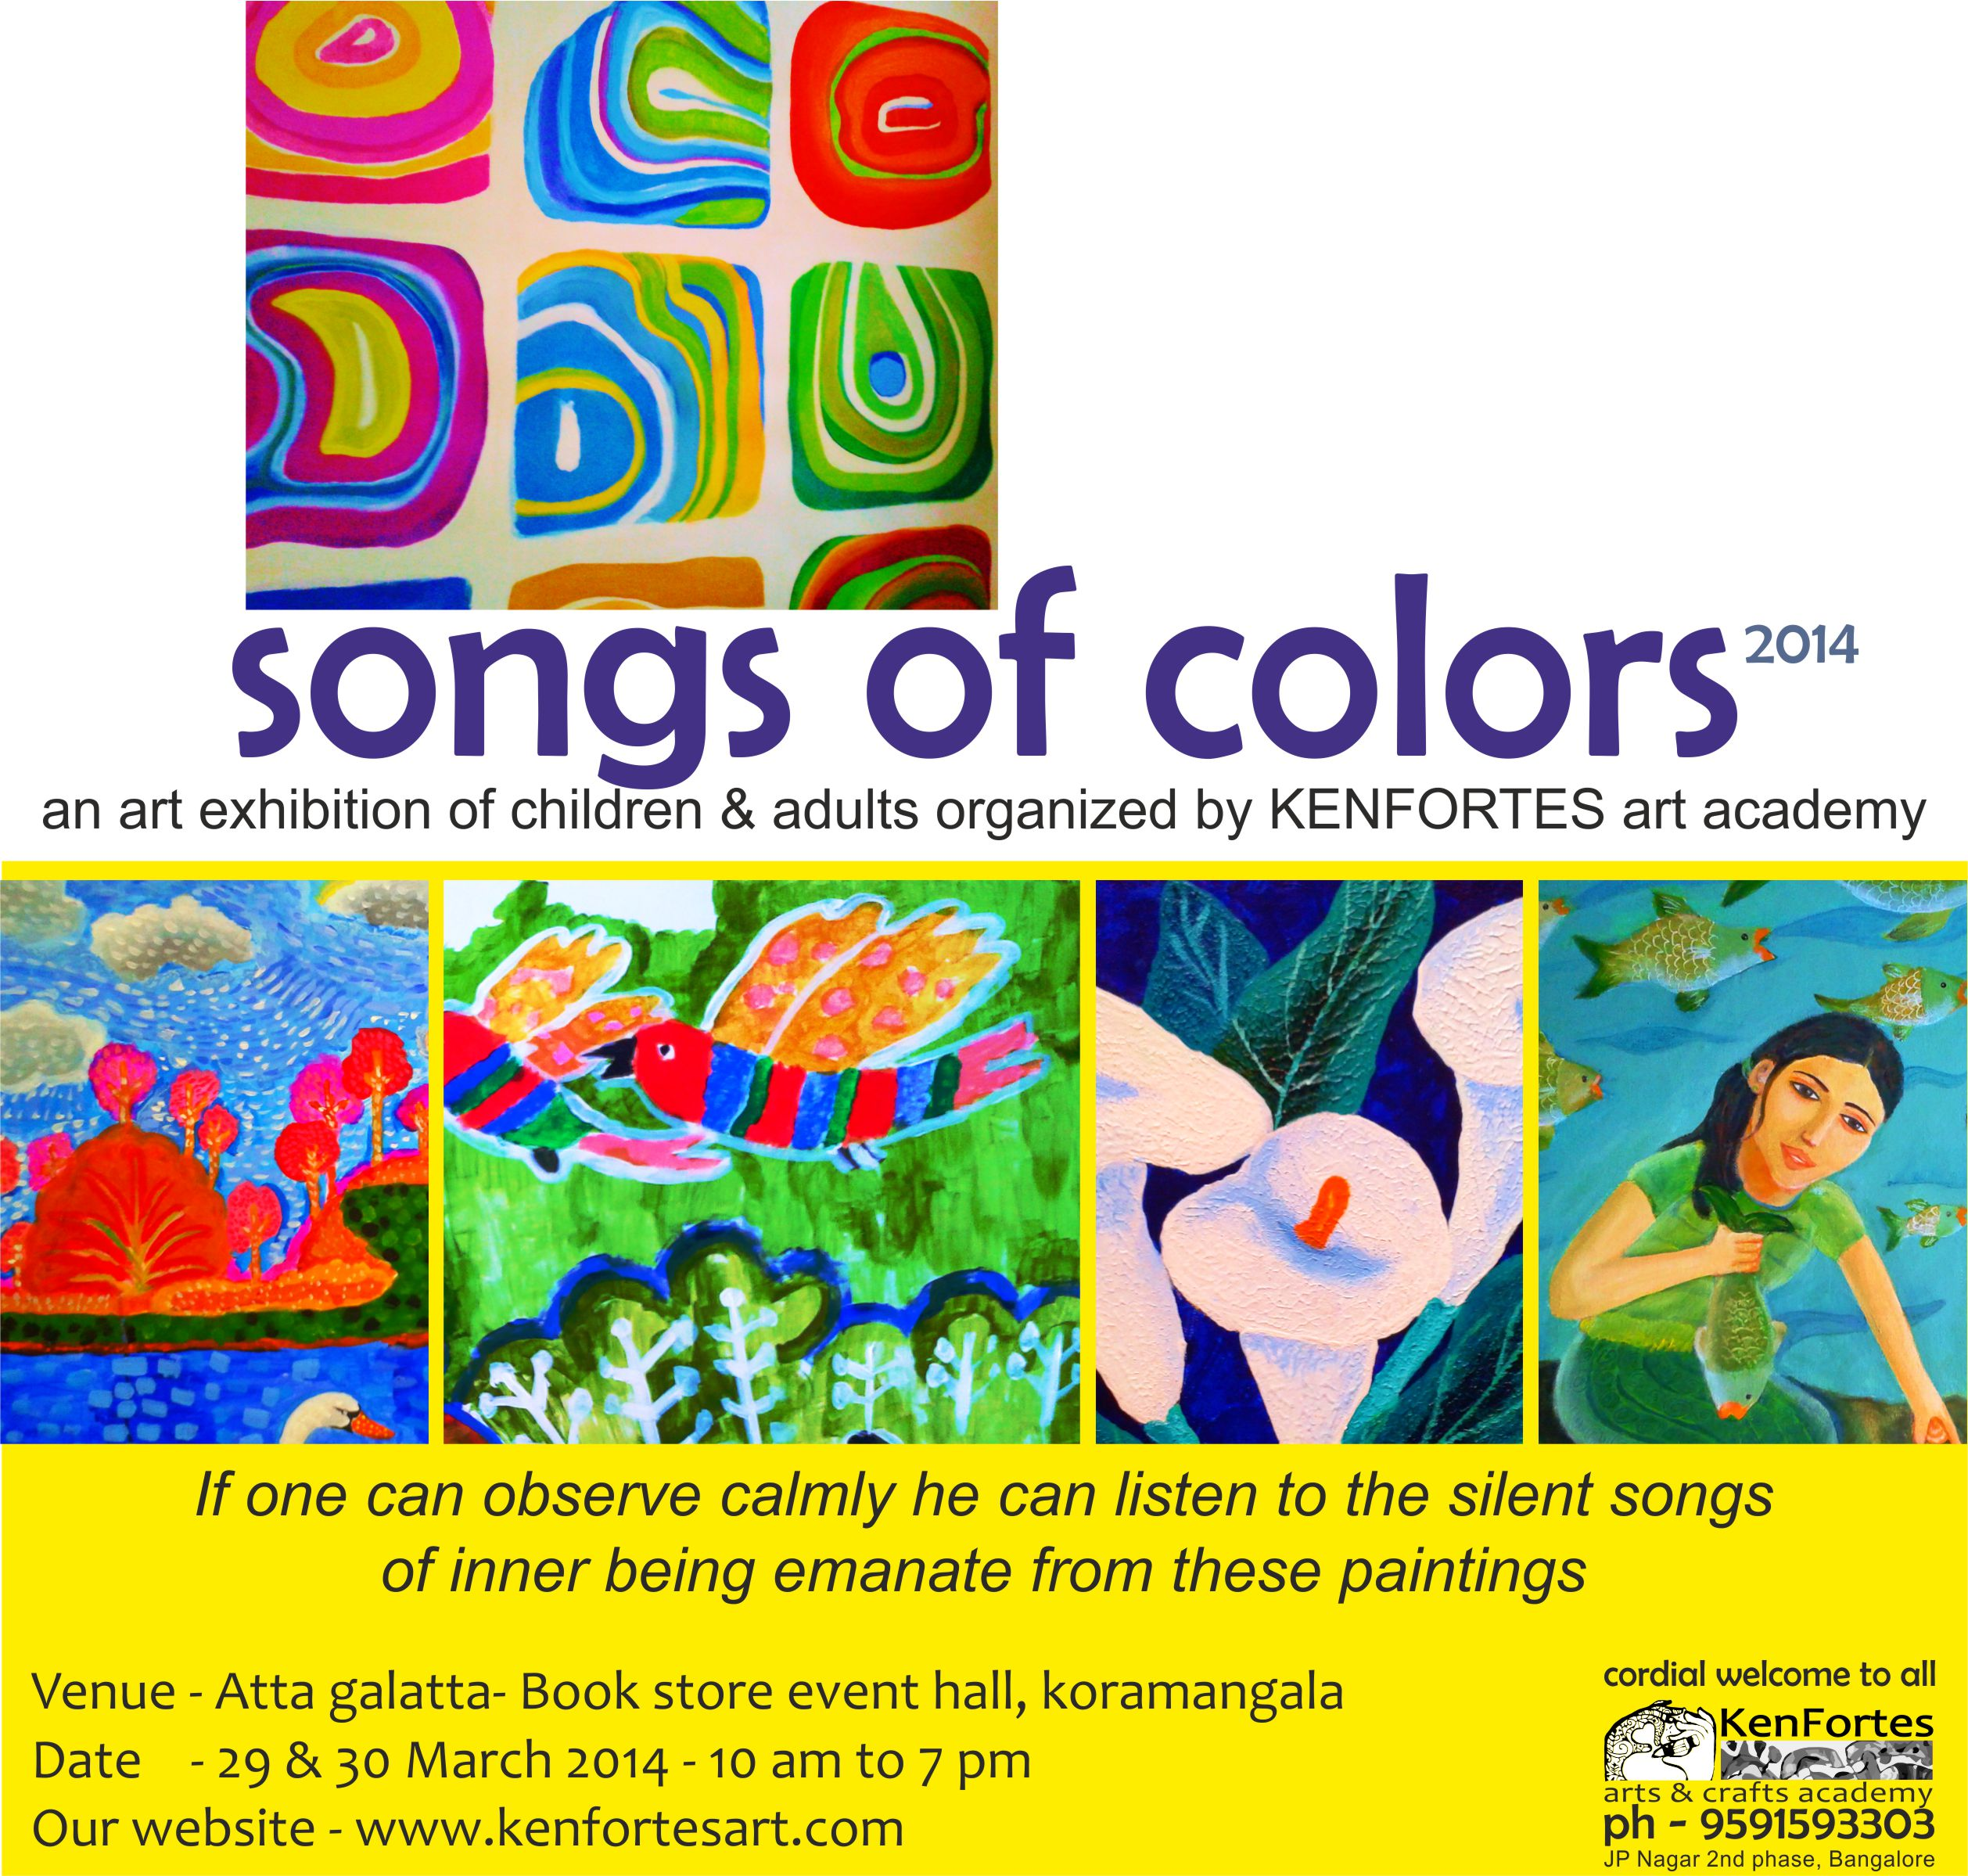 Songs of colors 2014 art exhibition